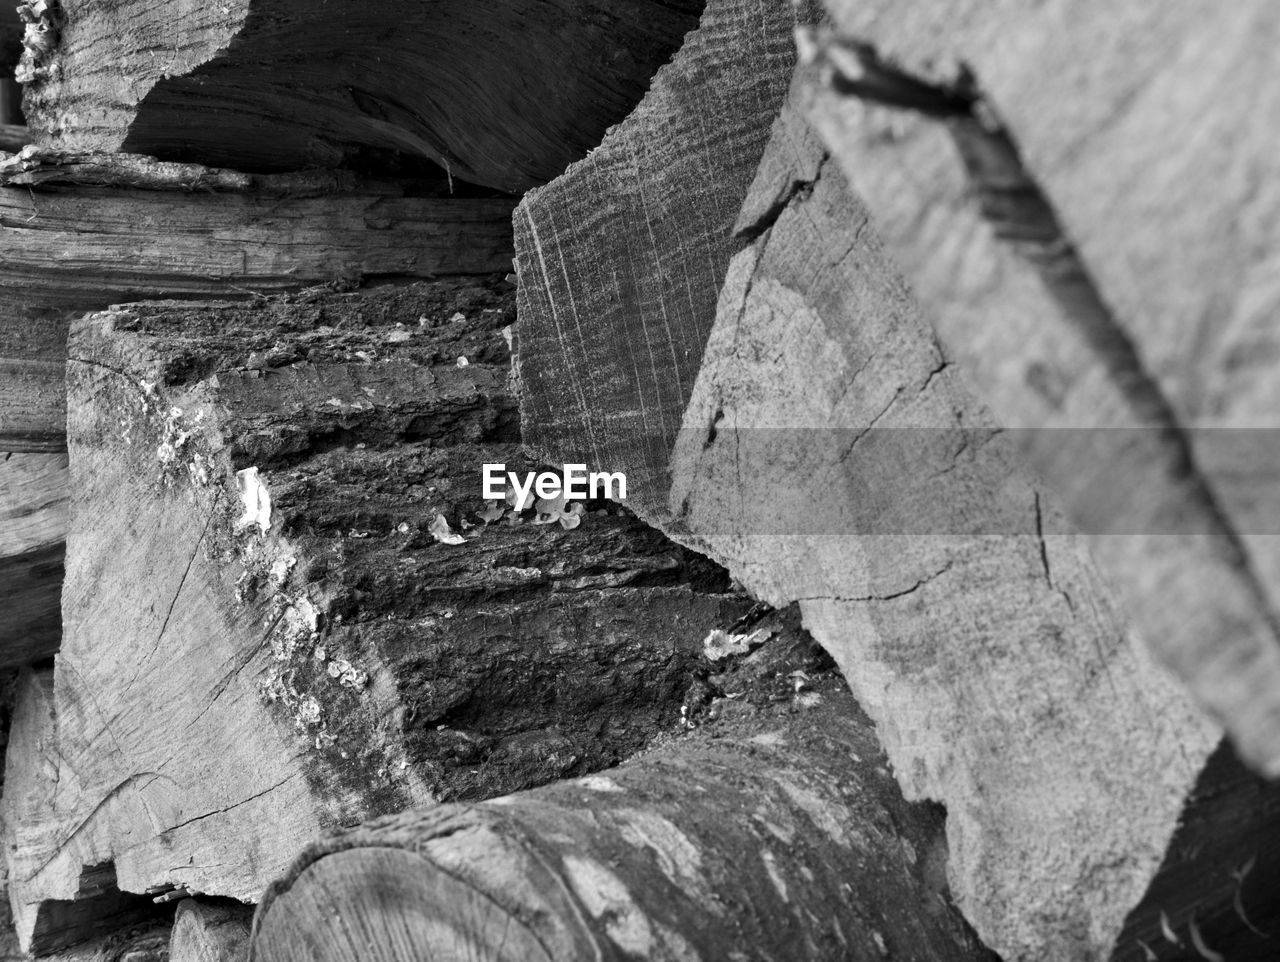 no people, close-up, textured, nature, wood - material, day, rough, log, pattern, wood, outdoors, tree, timber, full frame, rock, solid, focus on foreground, rock - object, firewood, backgrounds